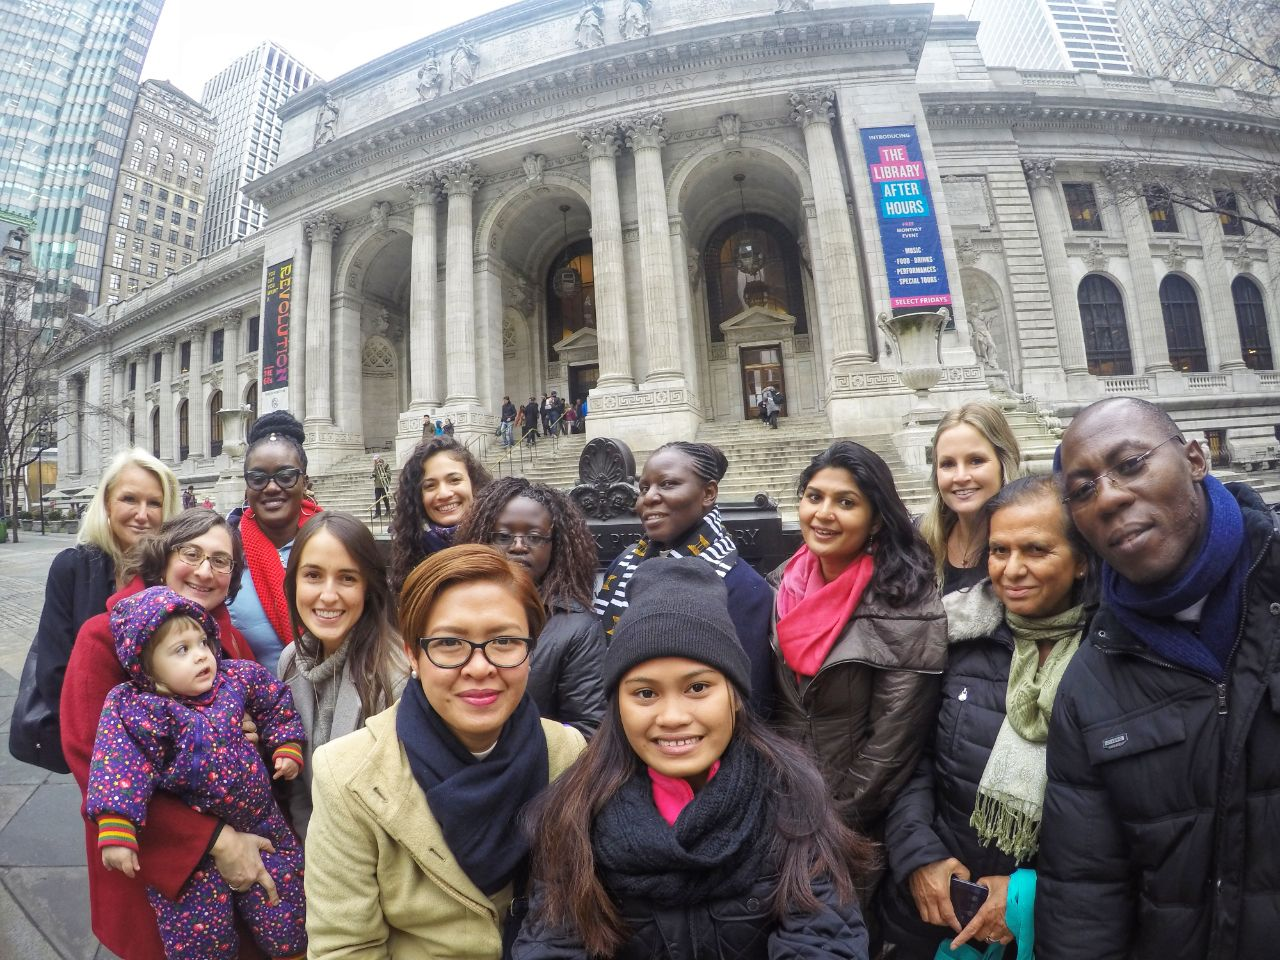 Staff, mentors, partnership coordinators and LitClub members from five organizations pose together outside of the New York Public Library.